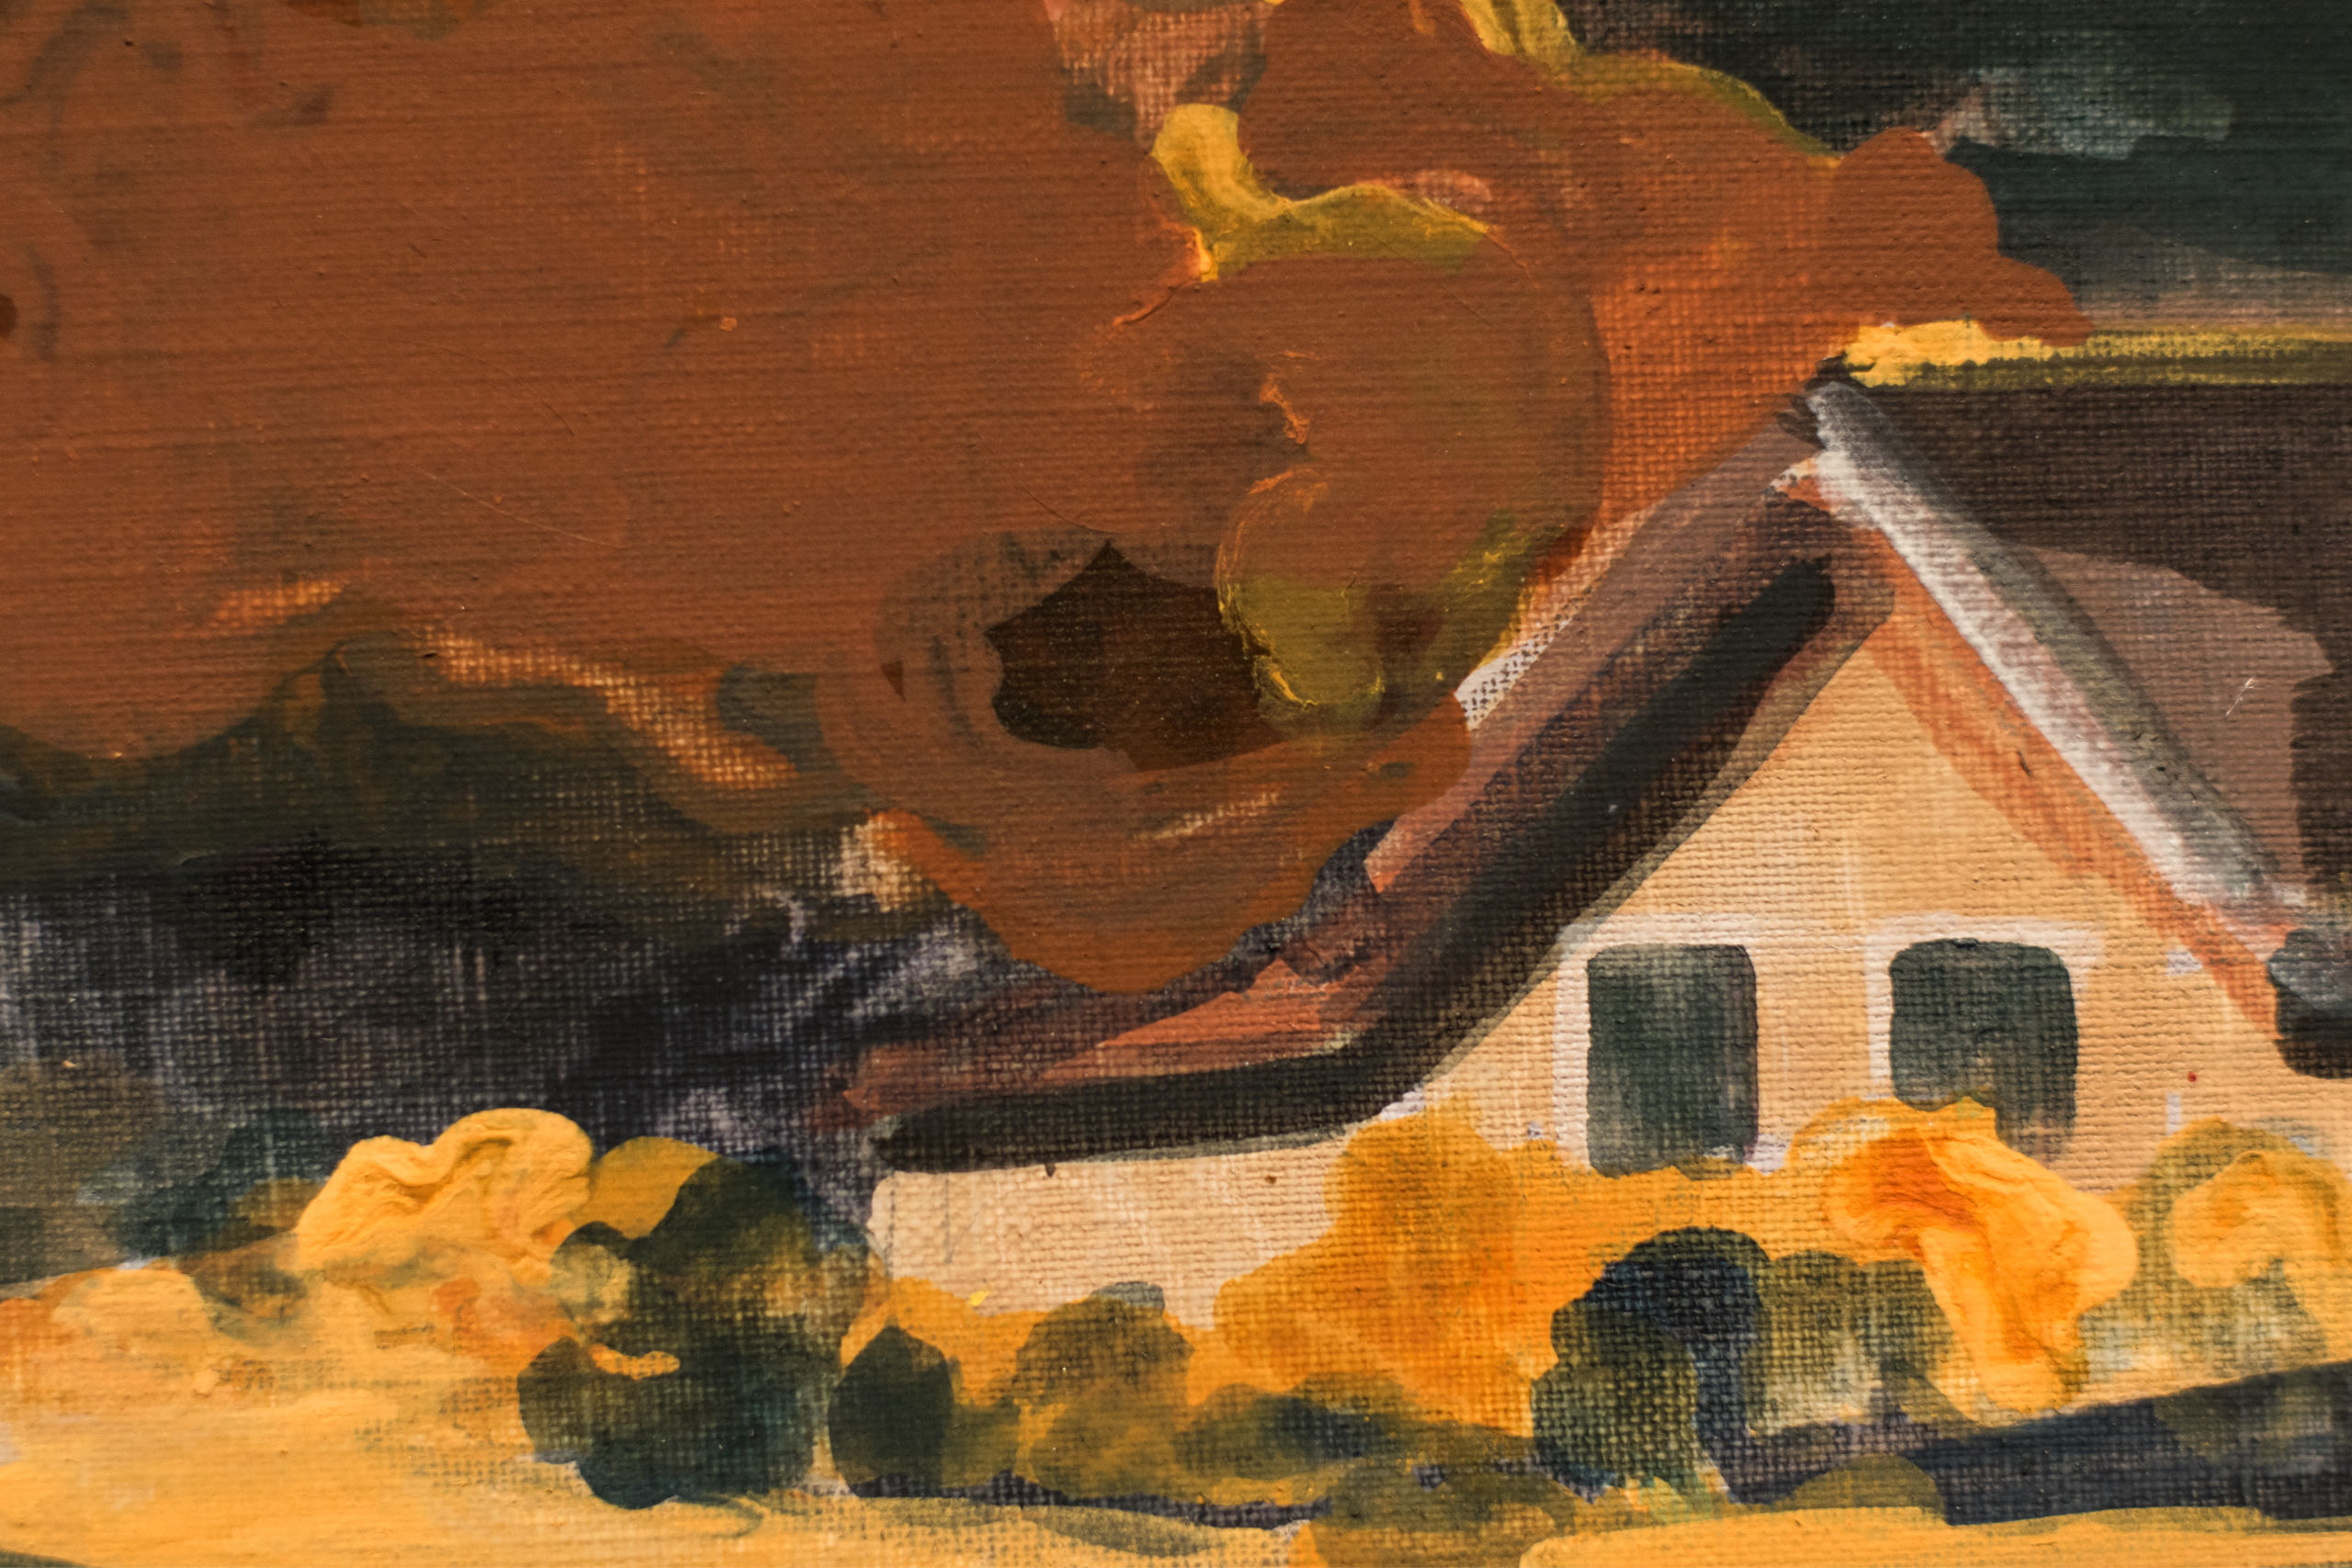 Rural house and landscape in earth tones, painting.